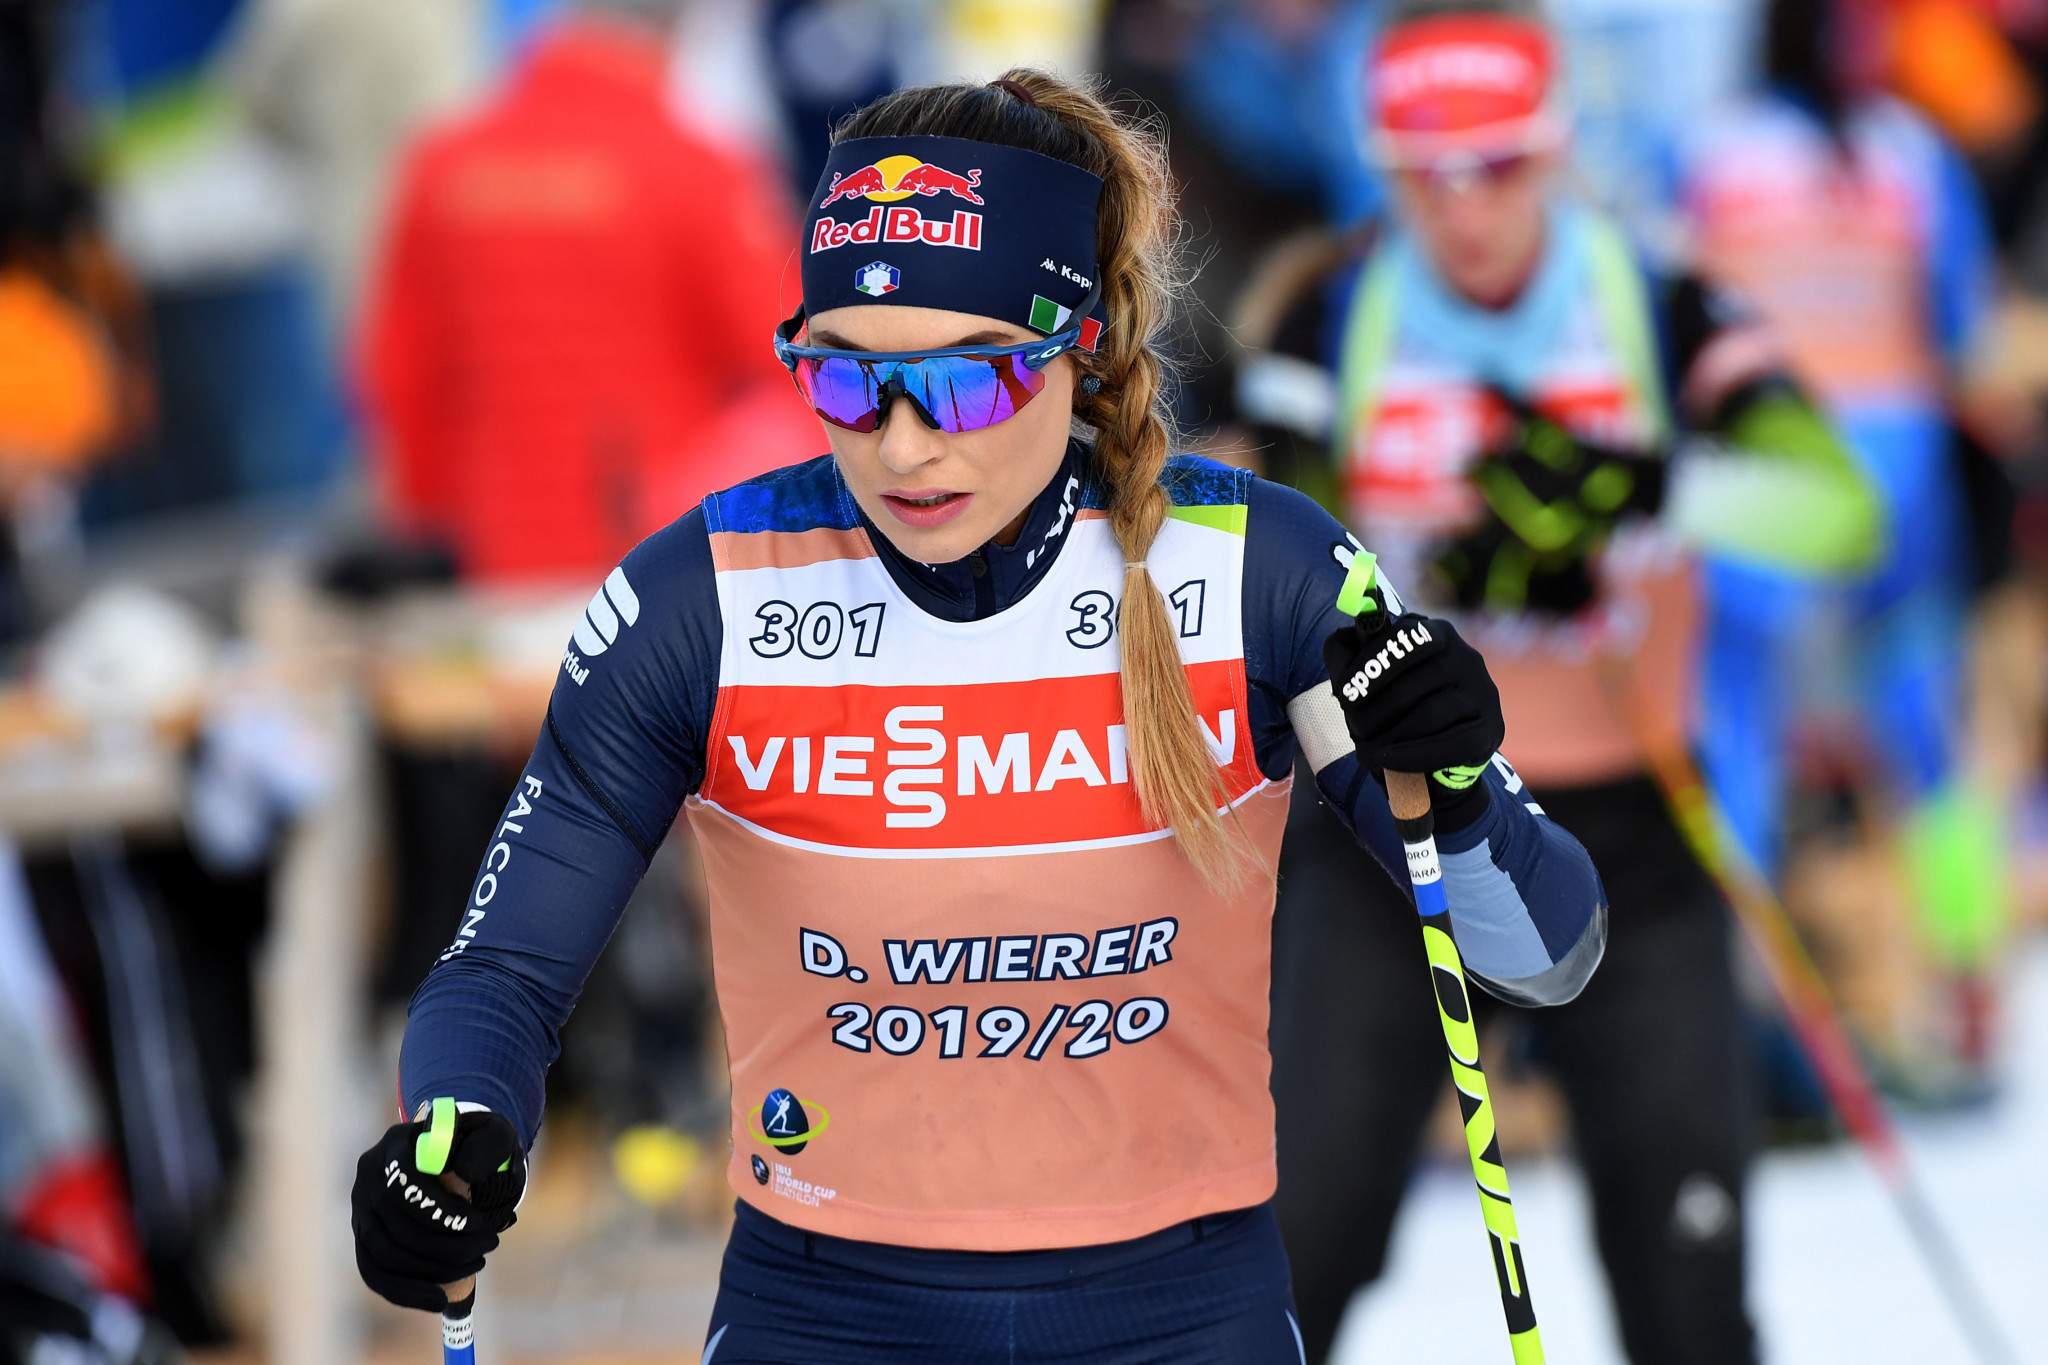 Dorothea Wierer of Italy finished the women's sprint in 22nd place ©Getty Images